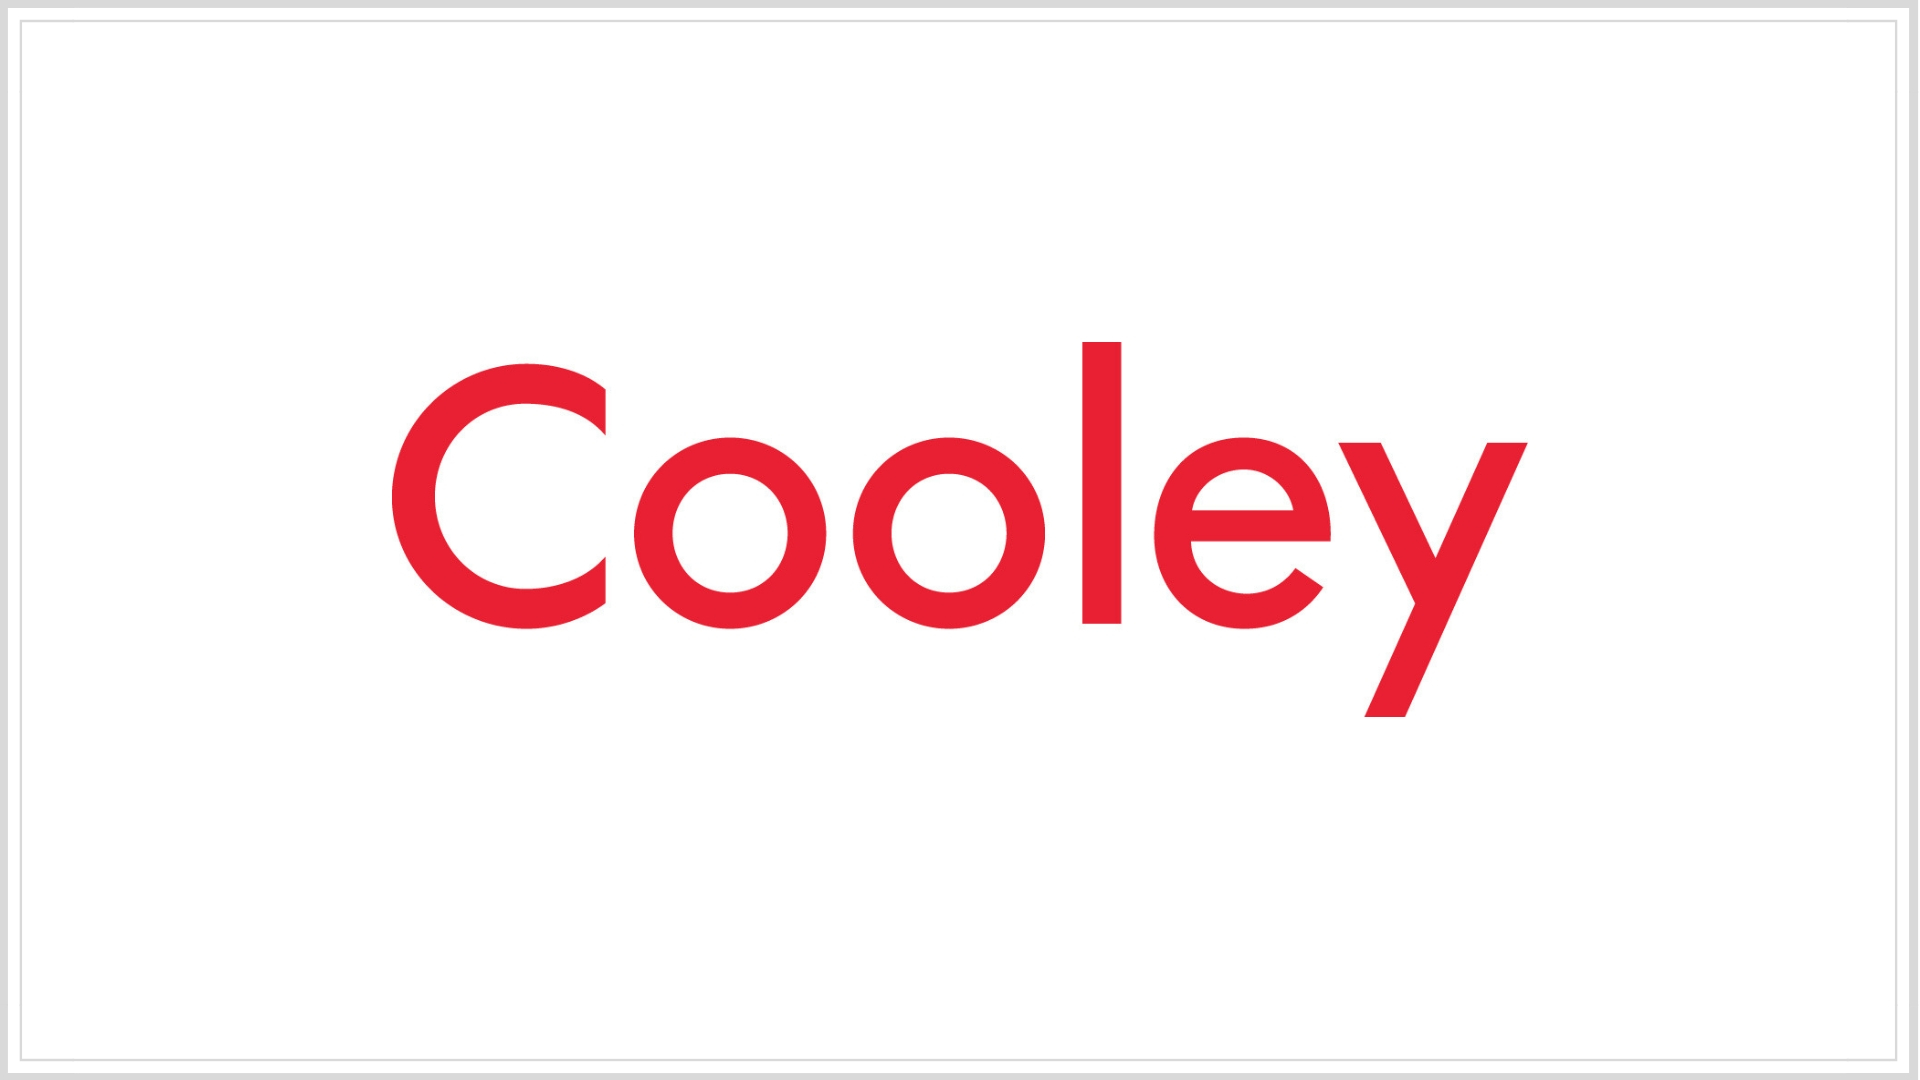 Cooley | Chloe Capital